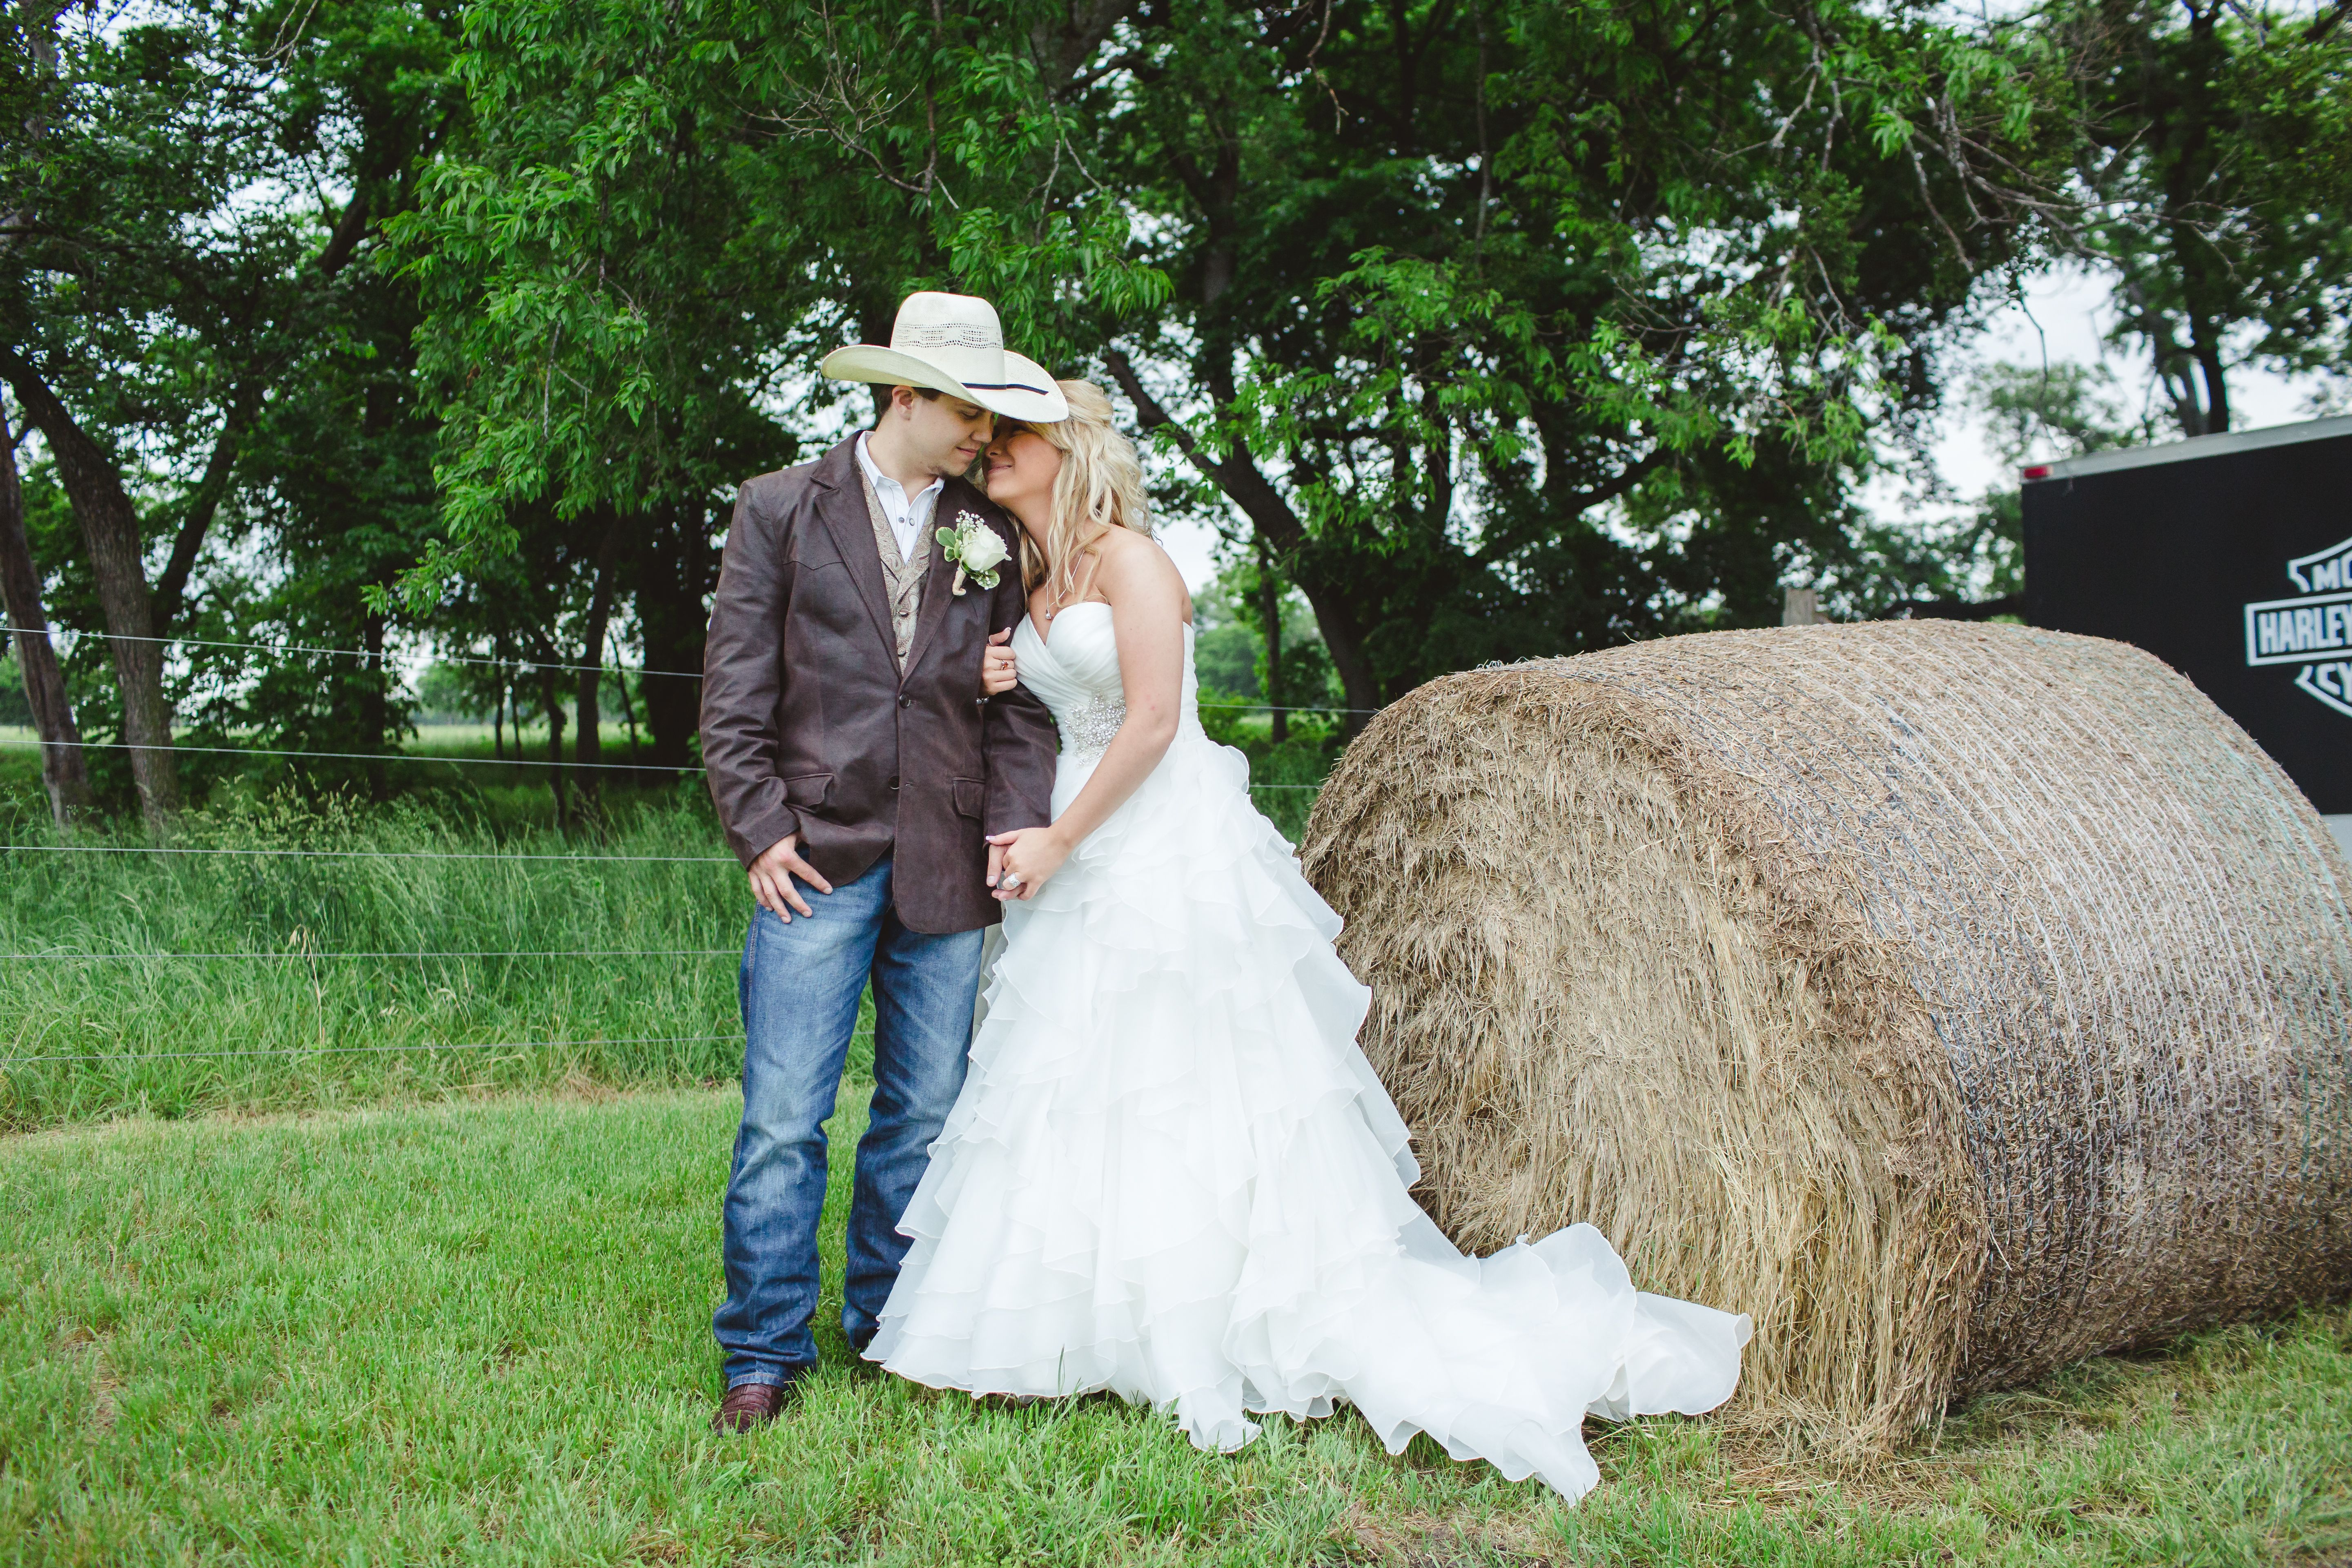 wedding dresses and cowboy boots photo - 1